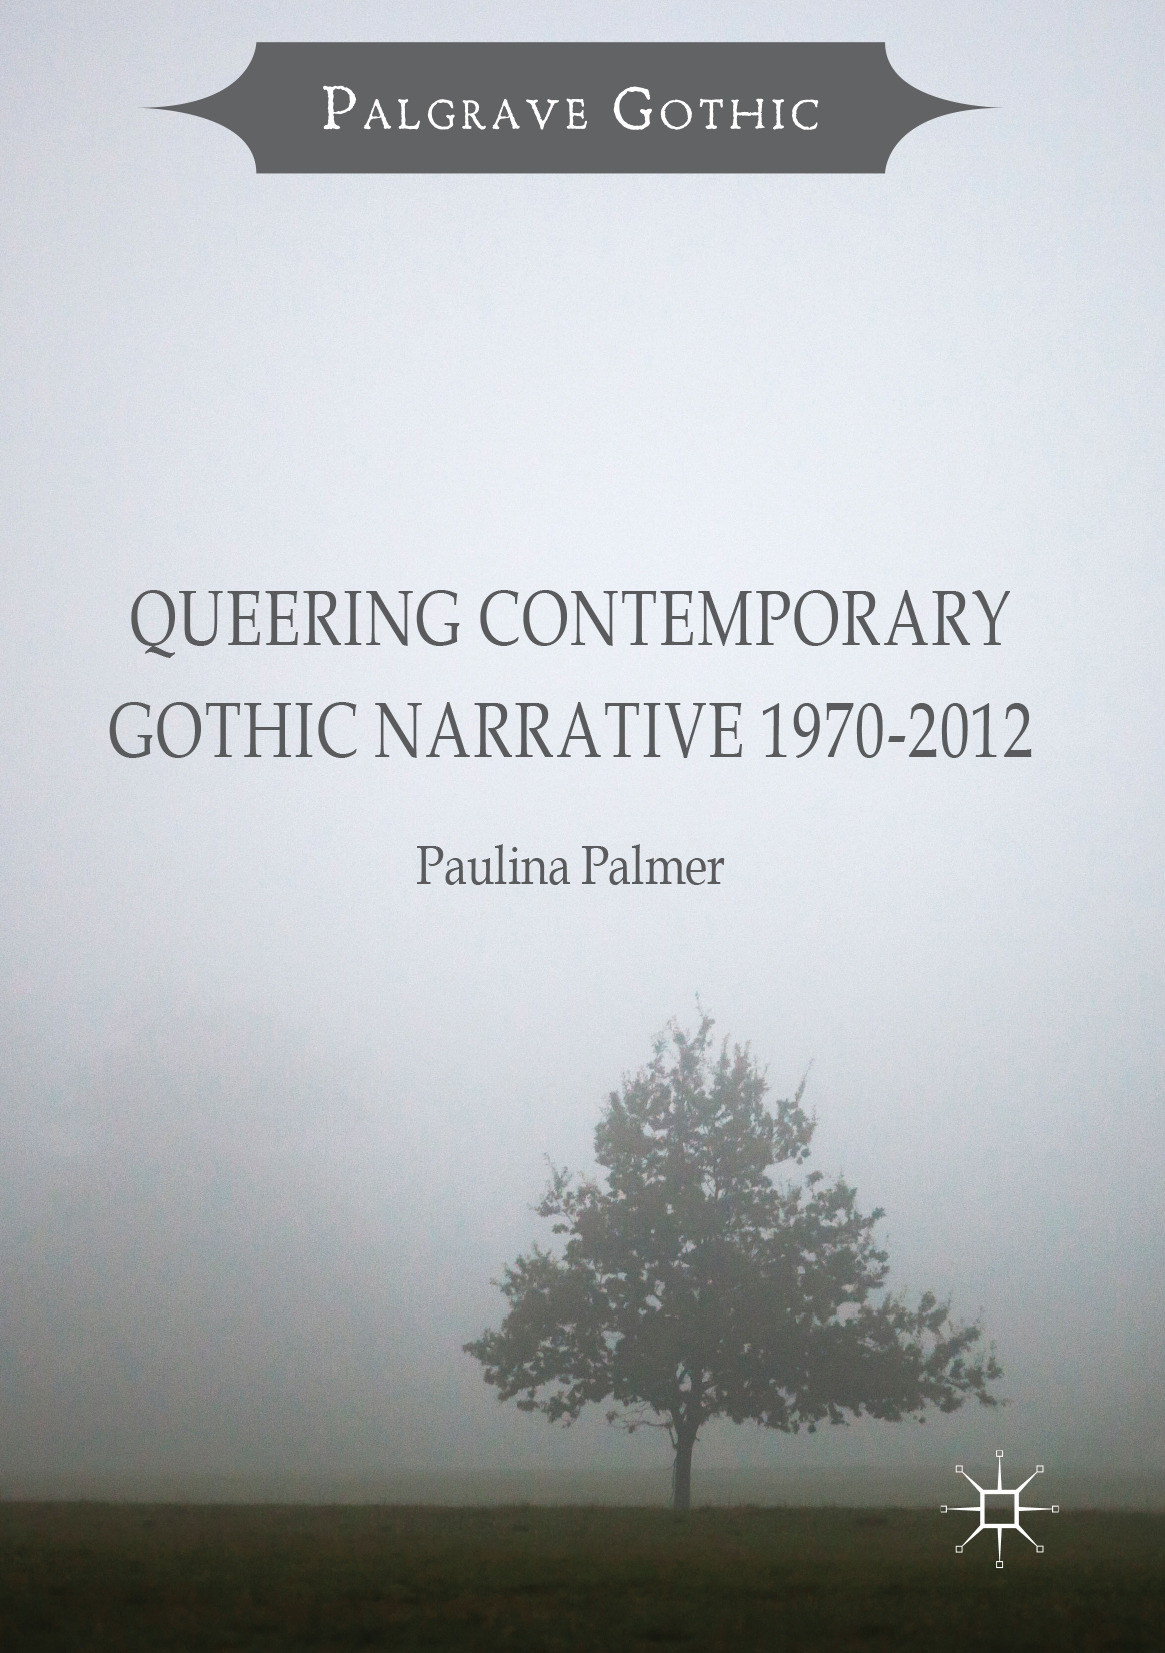 Palmer, Paulina - Queering Contemporary Gothic Narrative 1970-2012, ebook